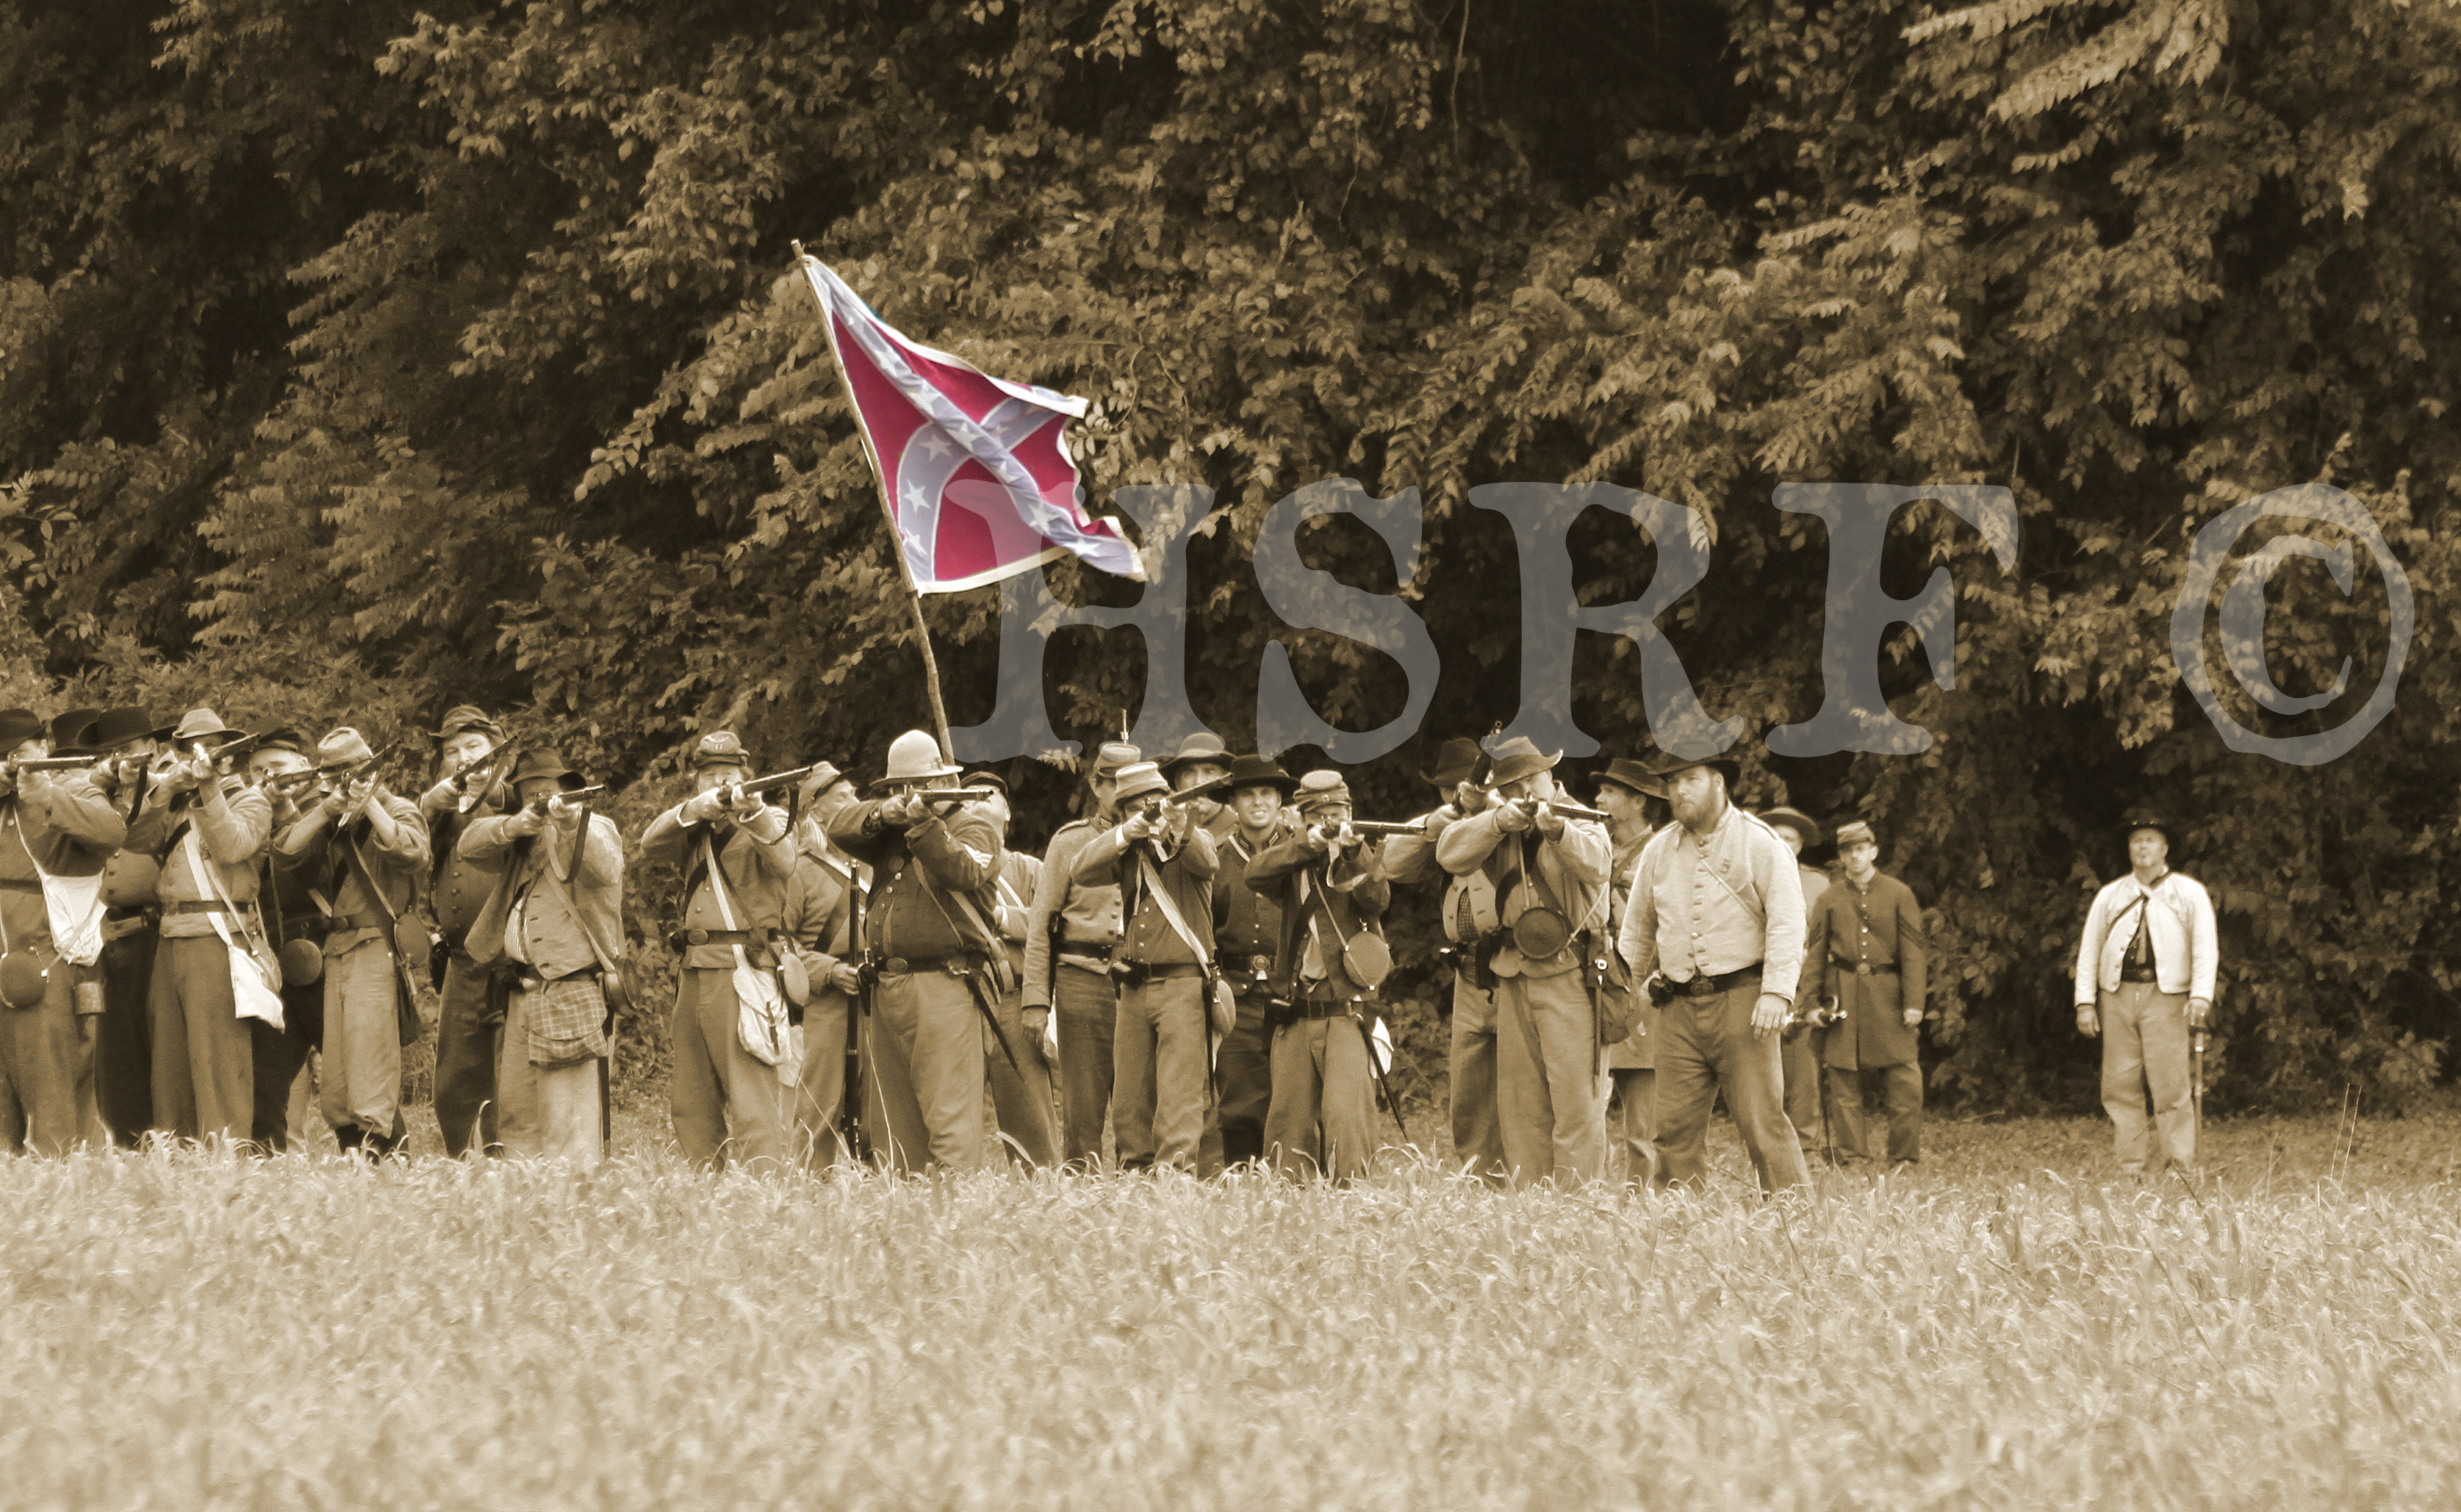 150th Anniversary - Reenactment